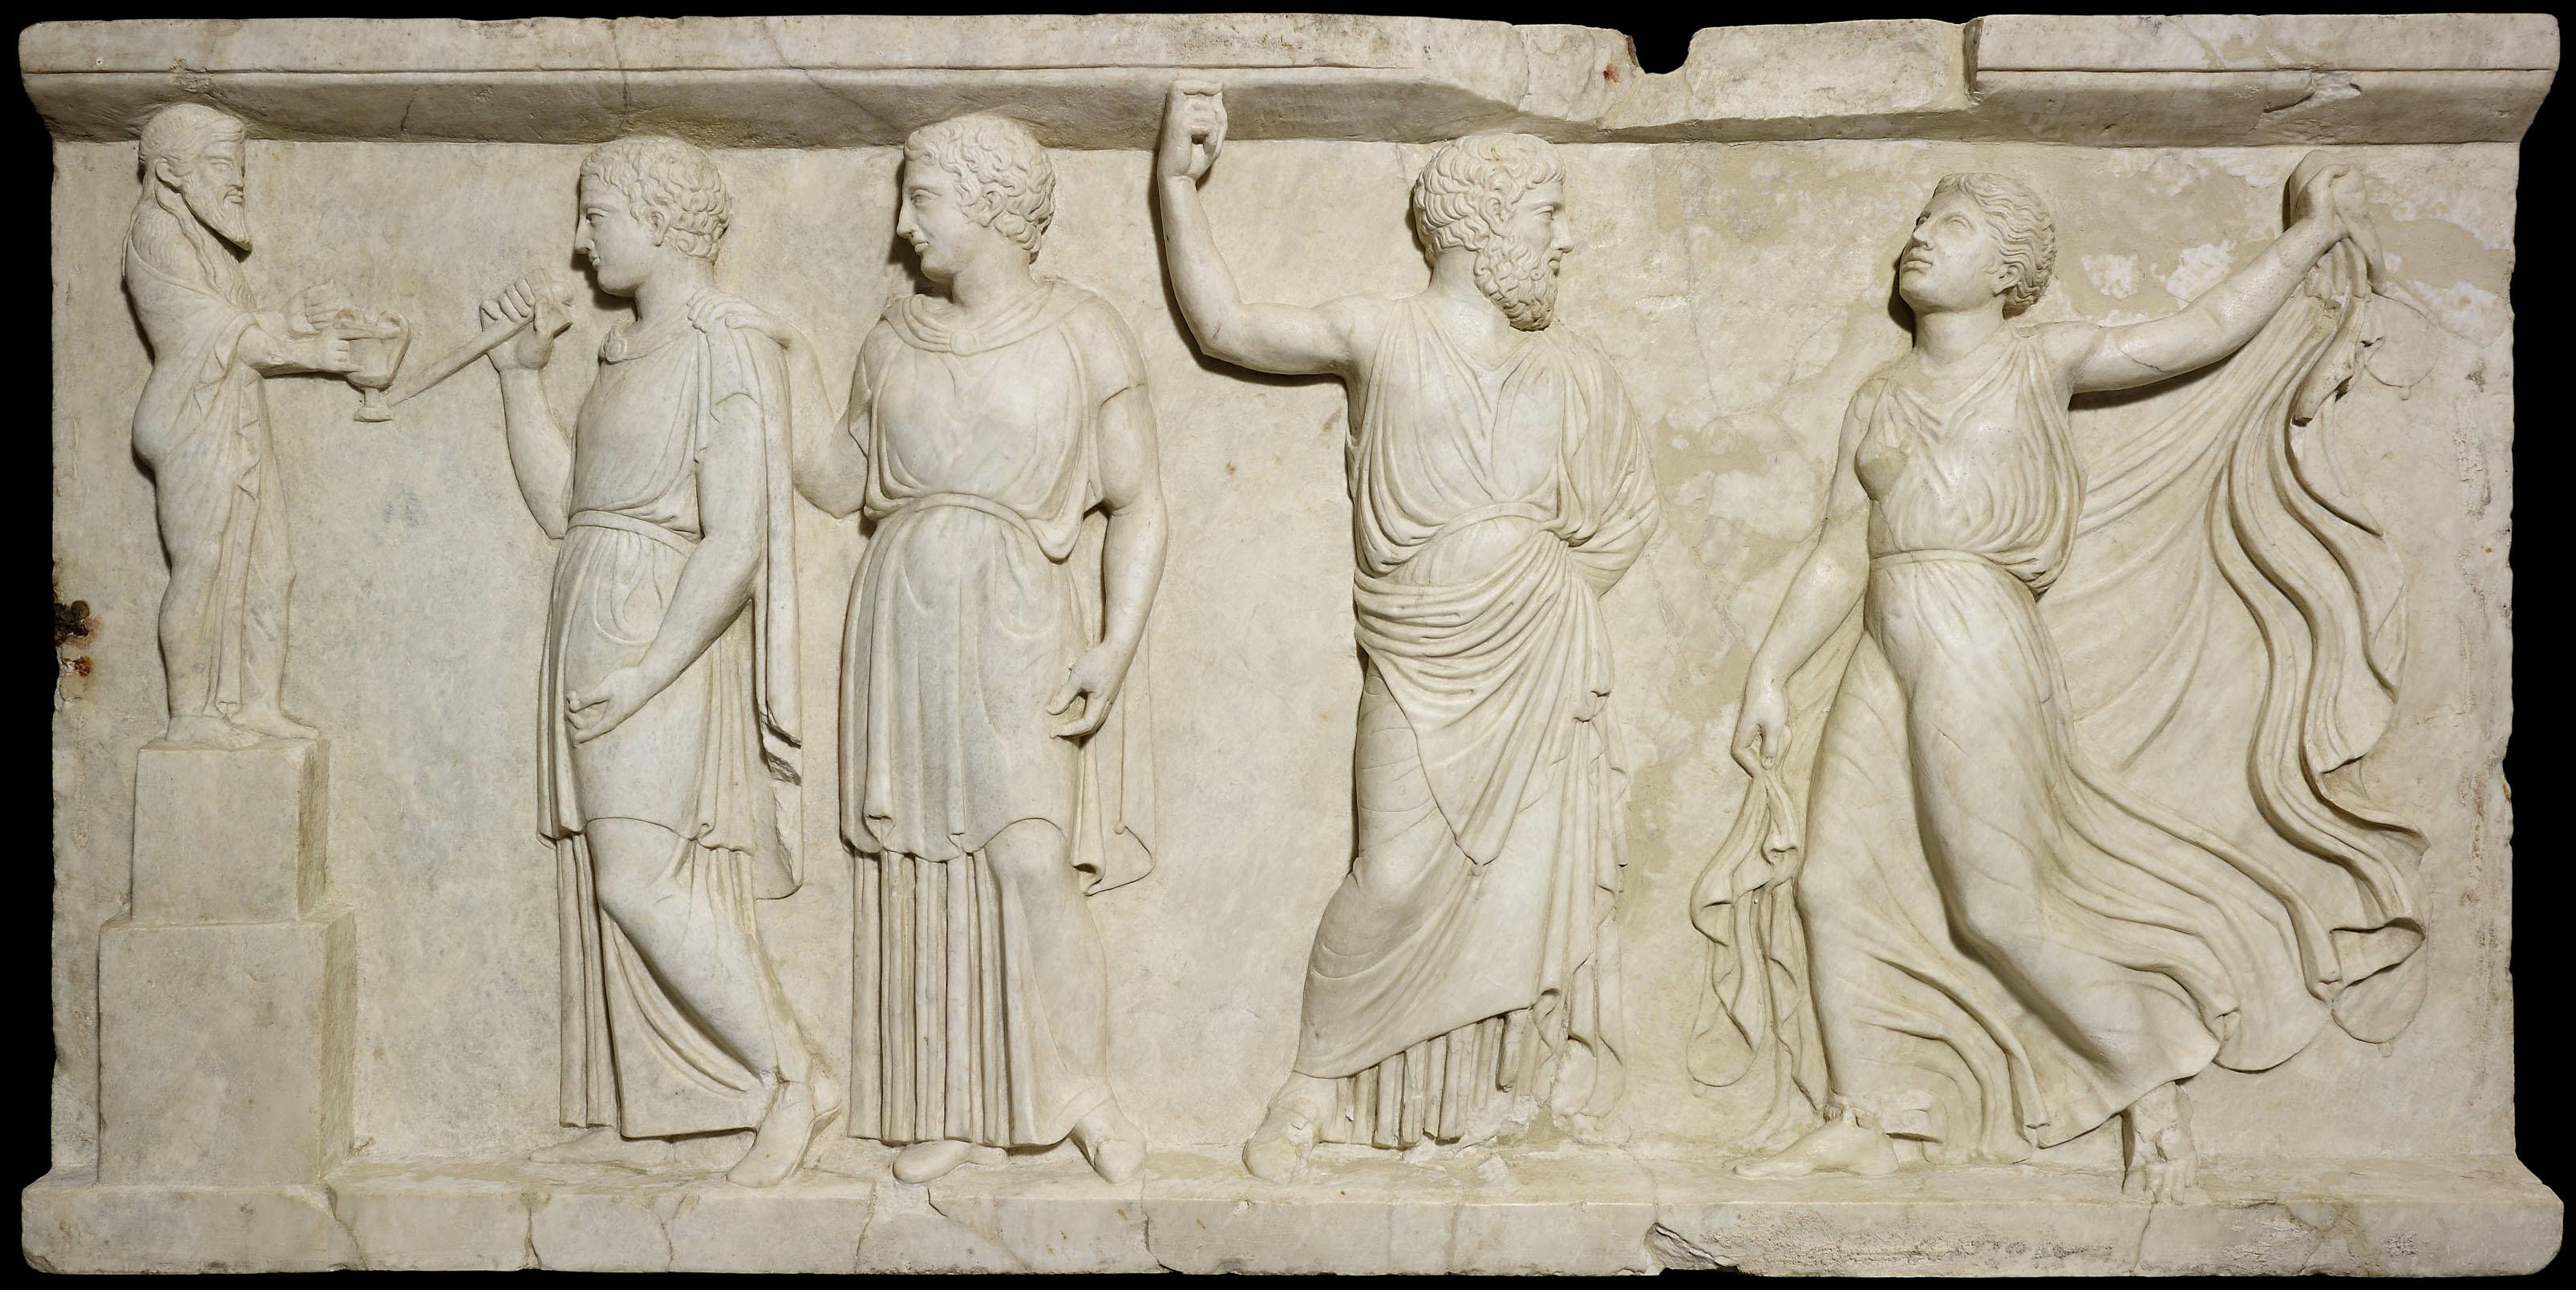 The History Blog » Blog Archive » Herculaneum Reliefs Together Throughout Greek Wall Art (Image 15 of 20)